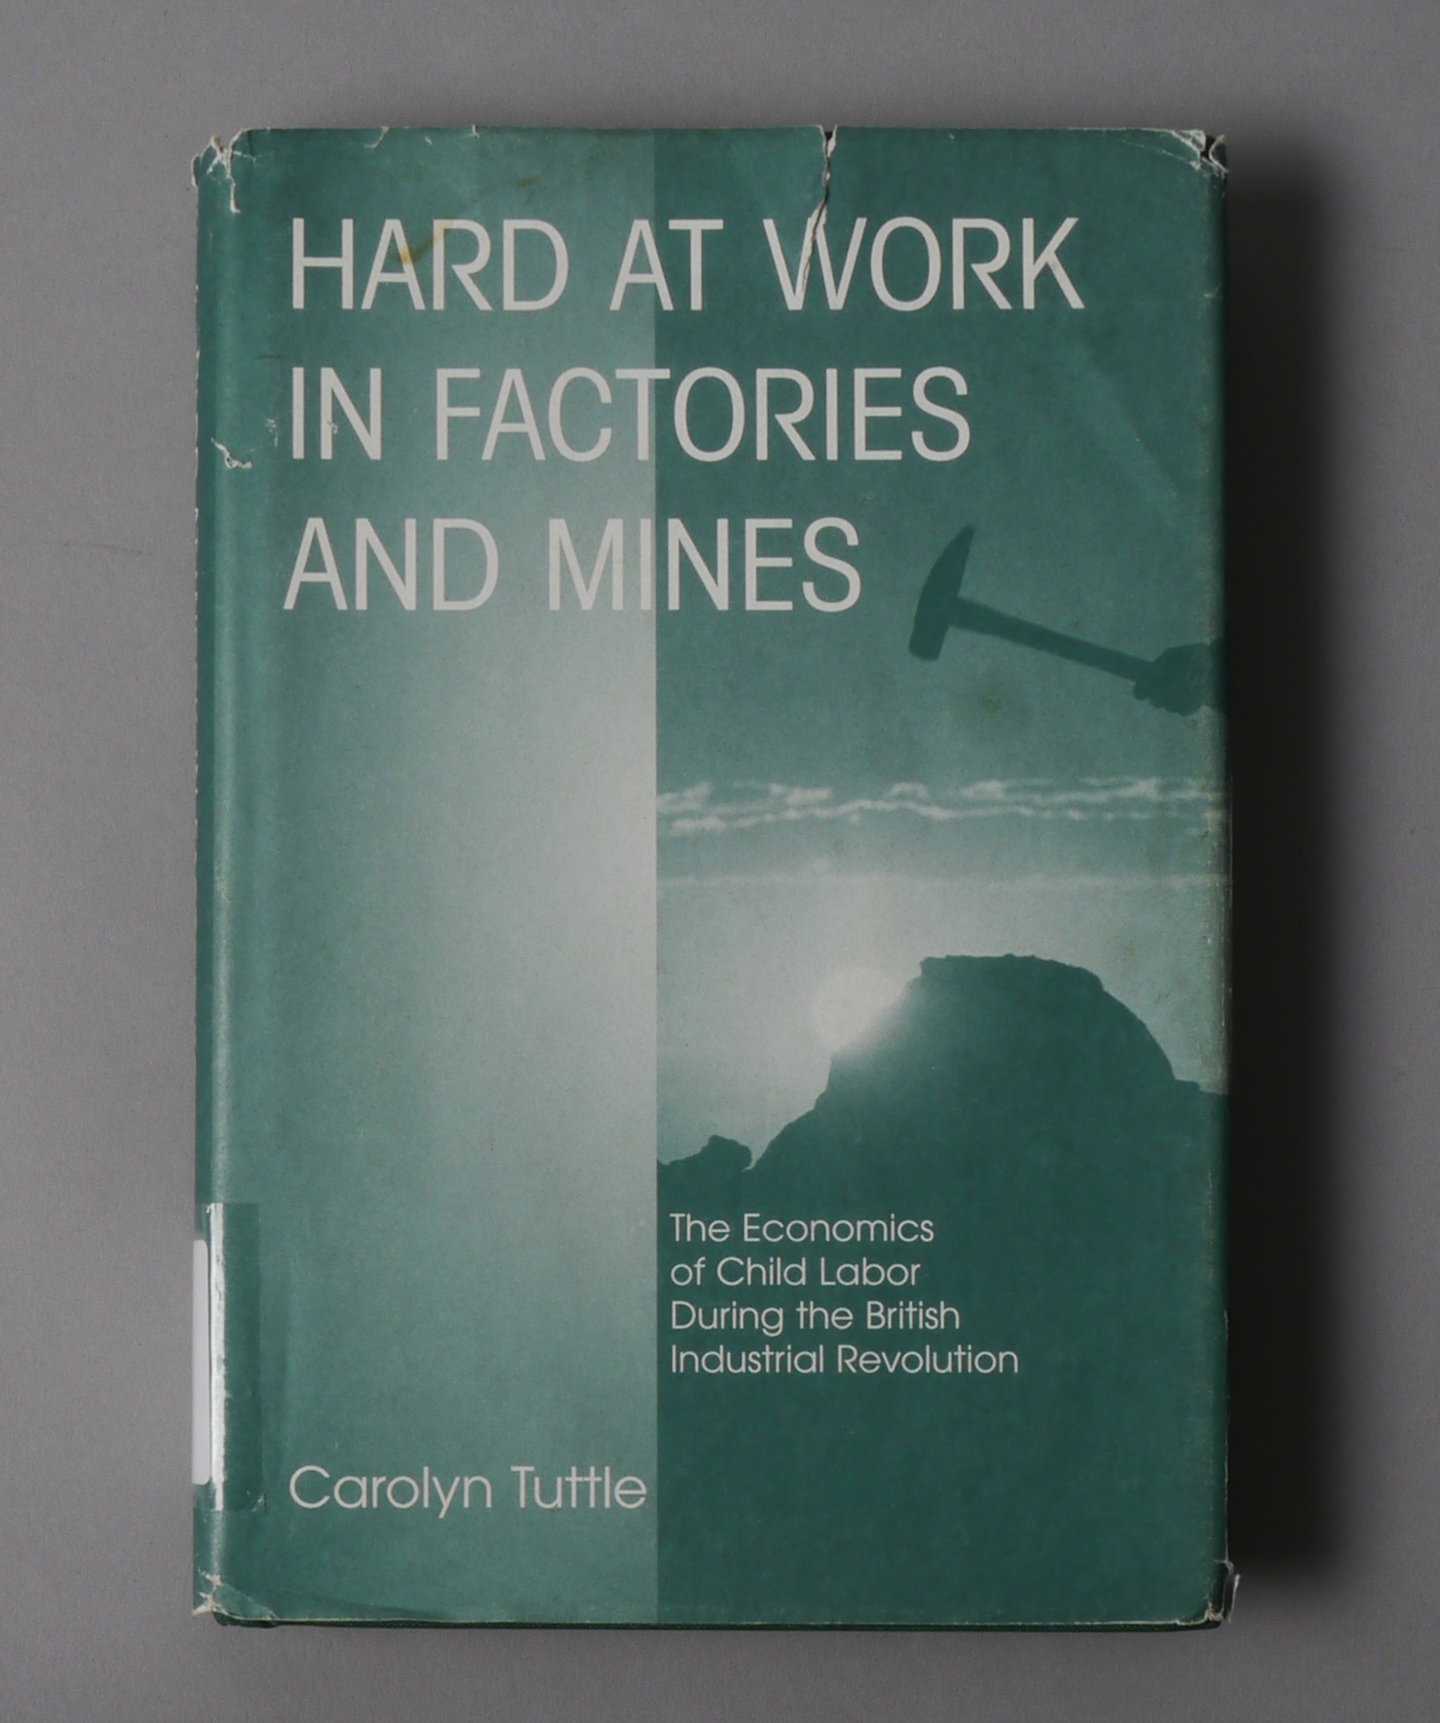 Hard At Work In Factories and Mines: the Economics of Child Labor During the British Industrial Revolution.